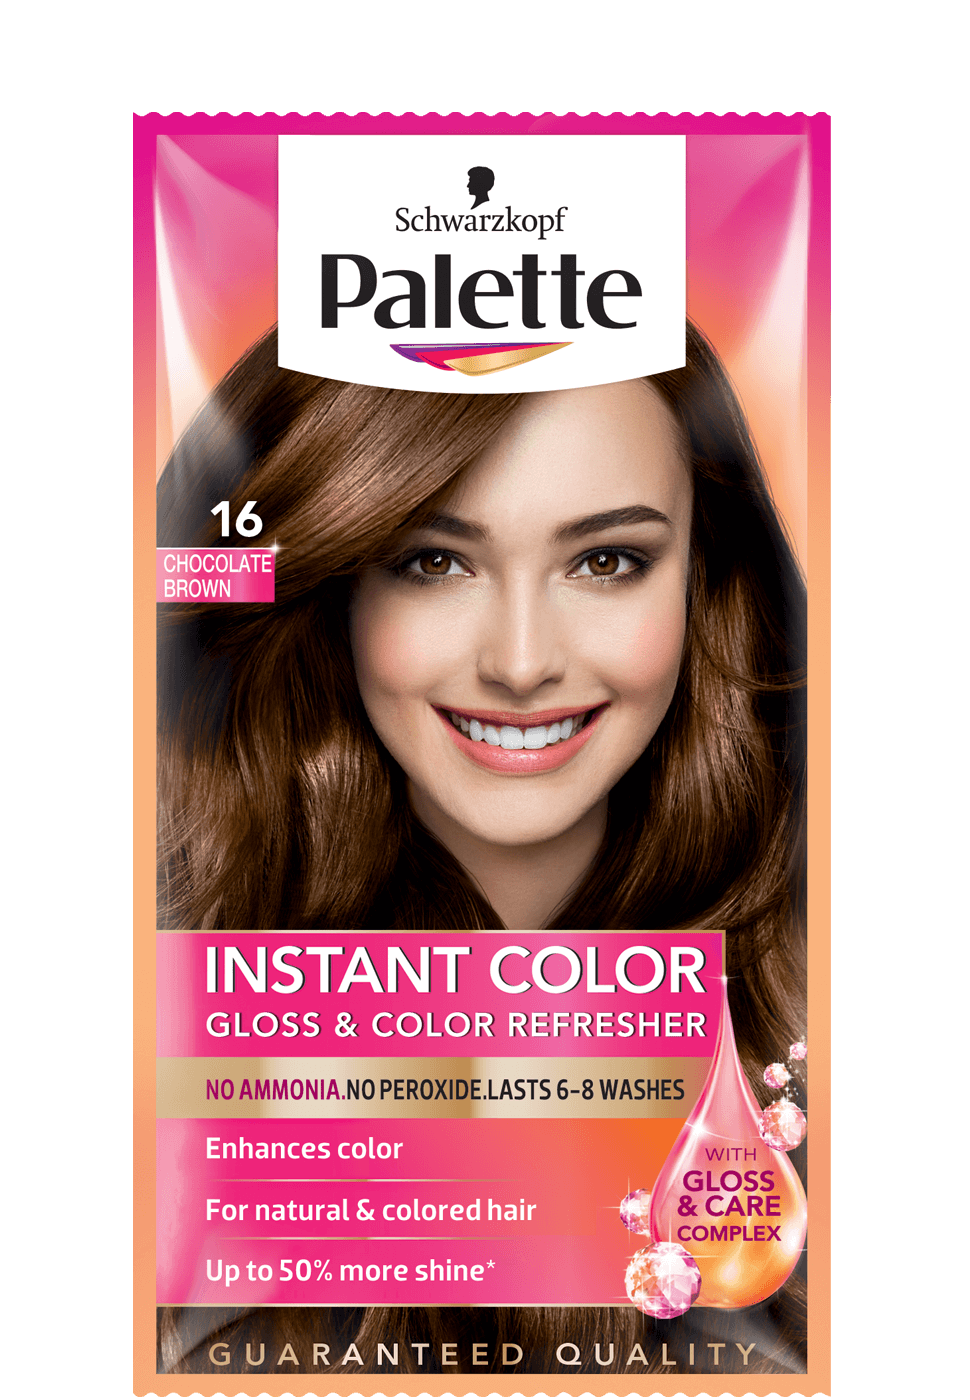 palette_com_ic_baseline_16_chocolate_brown_970x1400